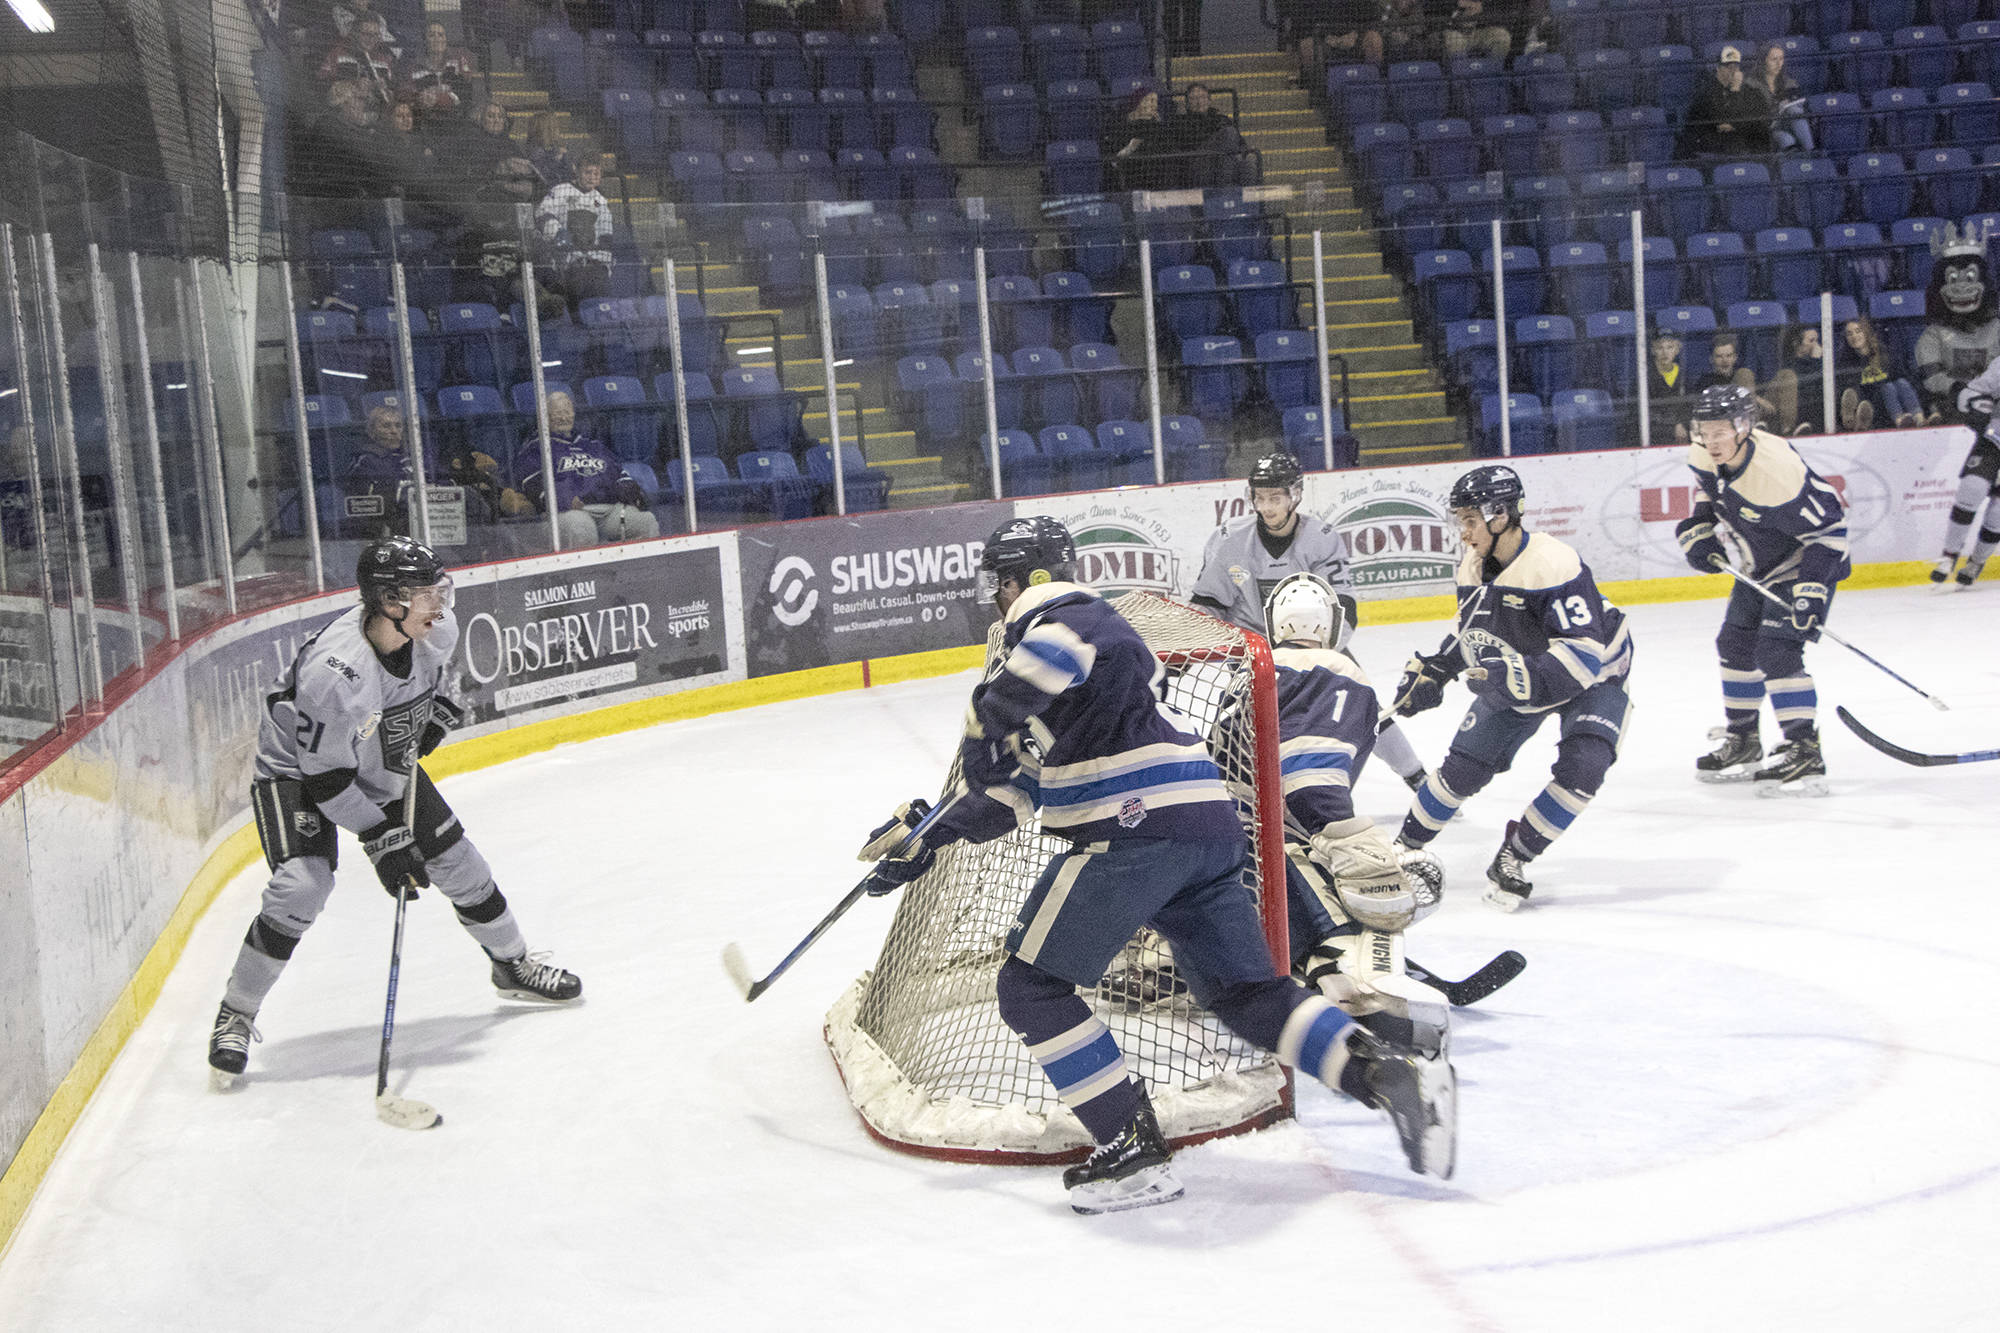 Justin Wilson of the Silverbacks controls the puck behind Langley's goal, keeping eyes up for passing options as the Rivermen close in during the Nov. 28 game in Salmon Arm. (Jodi Brak/Salmon Arm Observer)